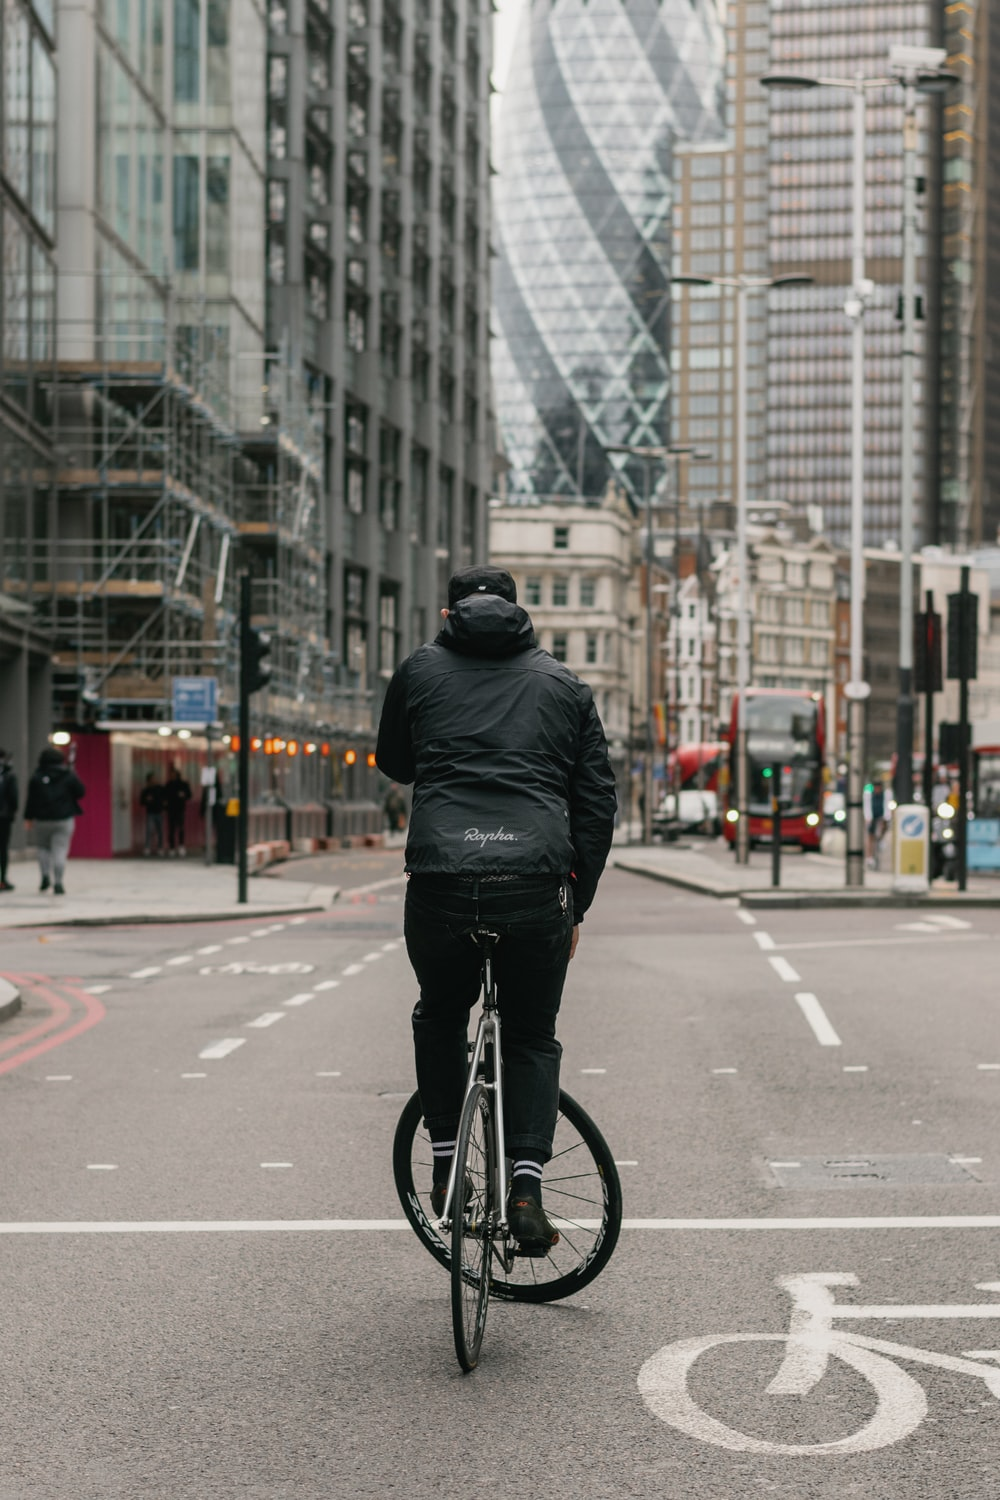 man in black leather jacket riding bicycle on road during daytime